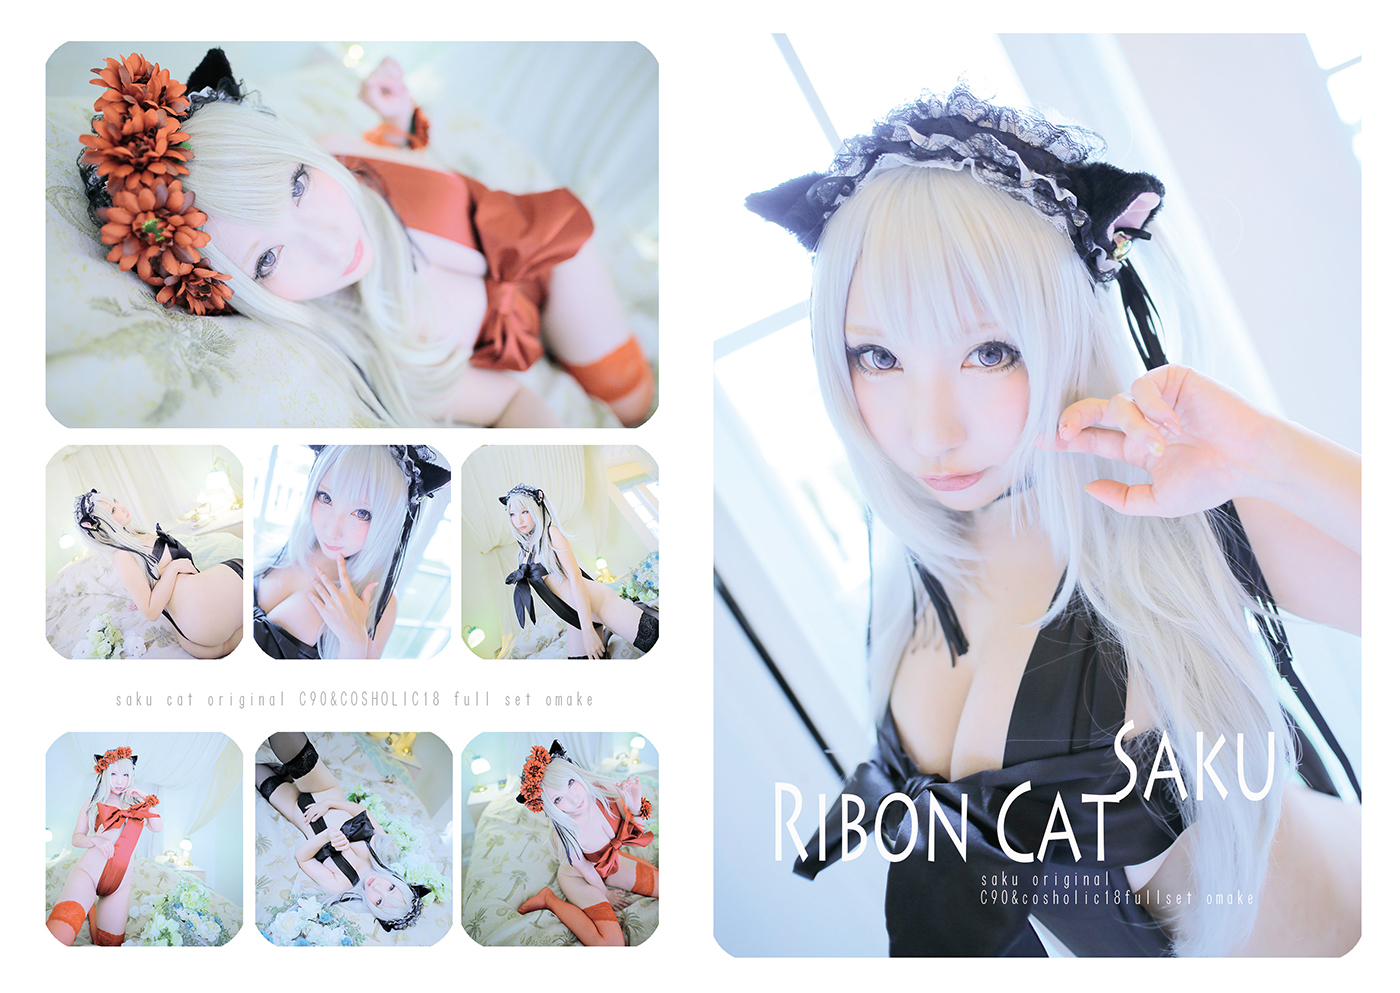 riboncatsaku-jpg (Cosplay) [Shooting Star's (SAKU サク)] RIBON CAT SAKU [227P81MB] 08180